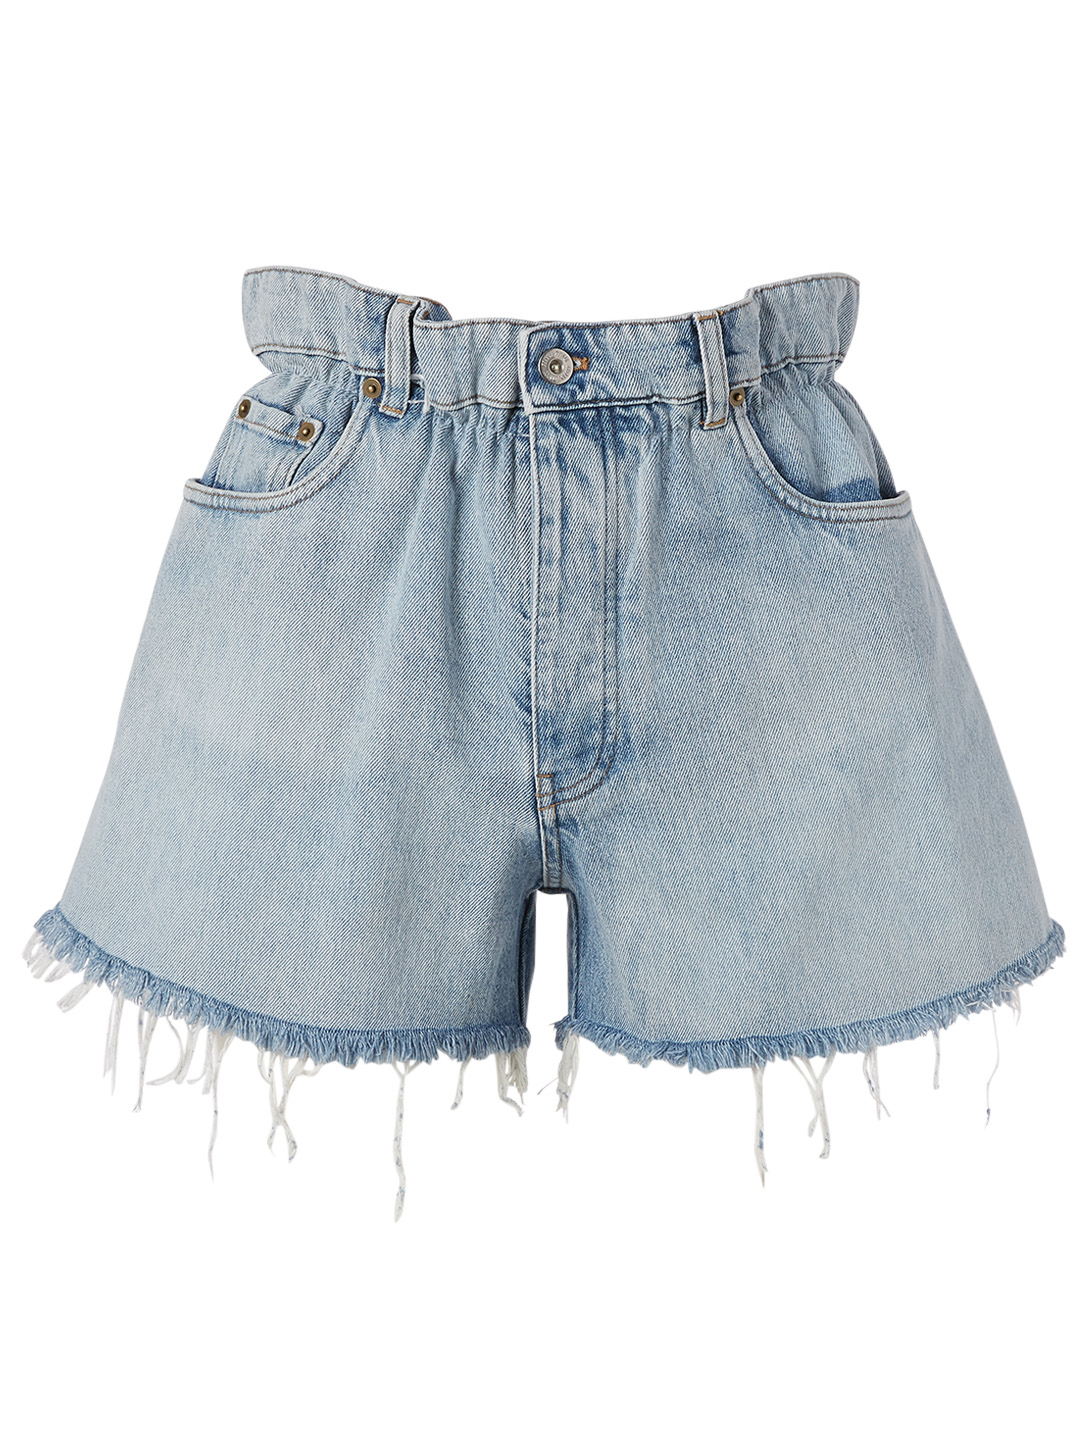 MIU MIU Paperbag High-Waisted Jean Shorts Women's Blue